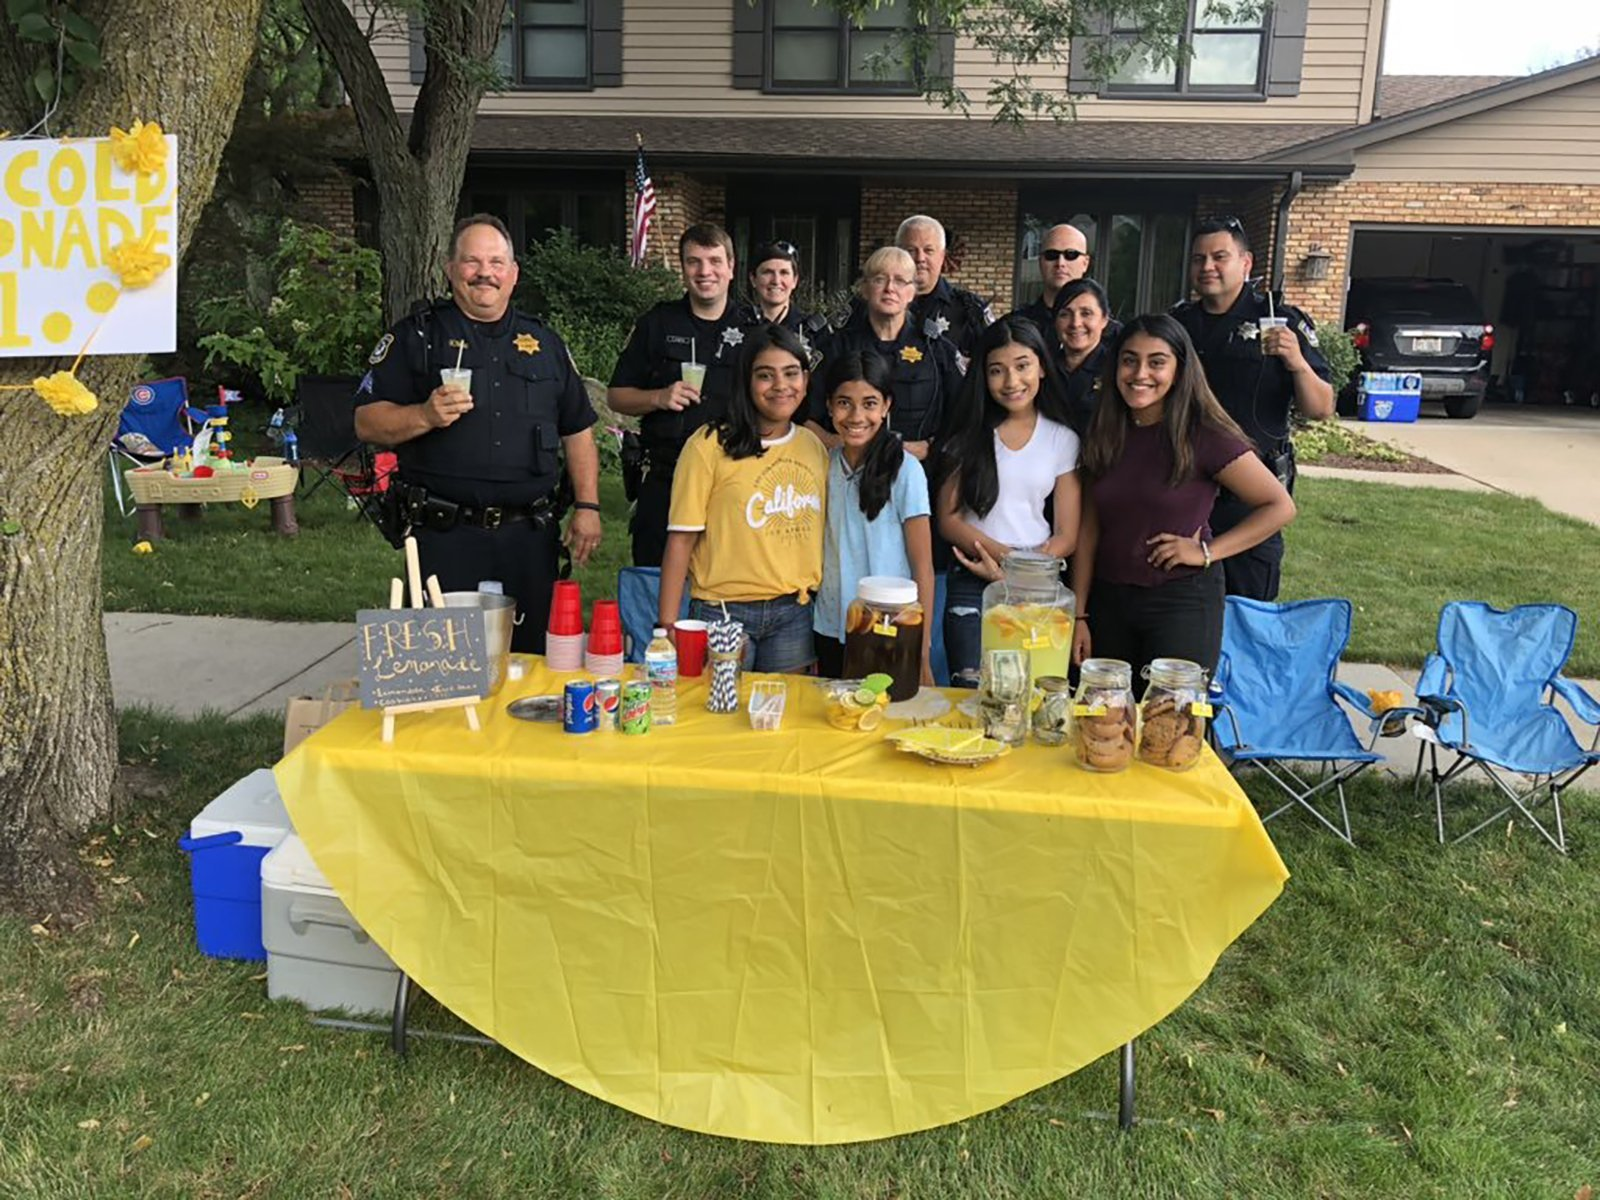 Thieves stole $9 from a girl's lemonade stand for charity. Police and neighbors rallied to give her more than $300